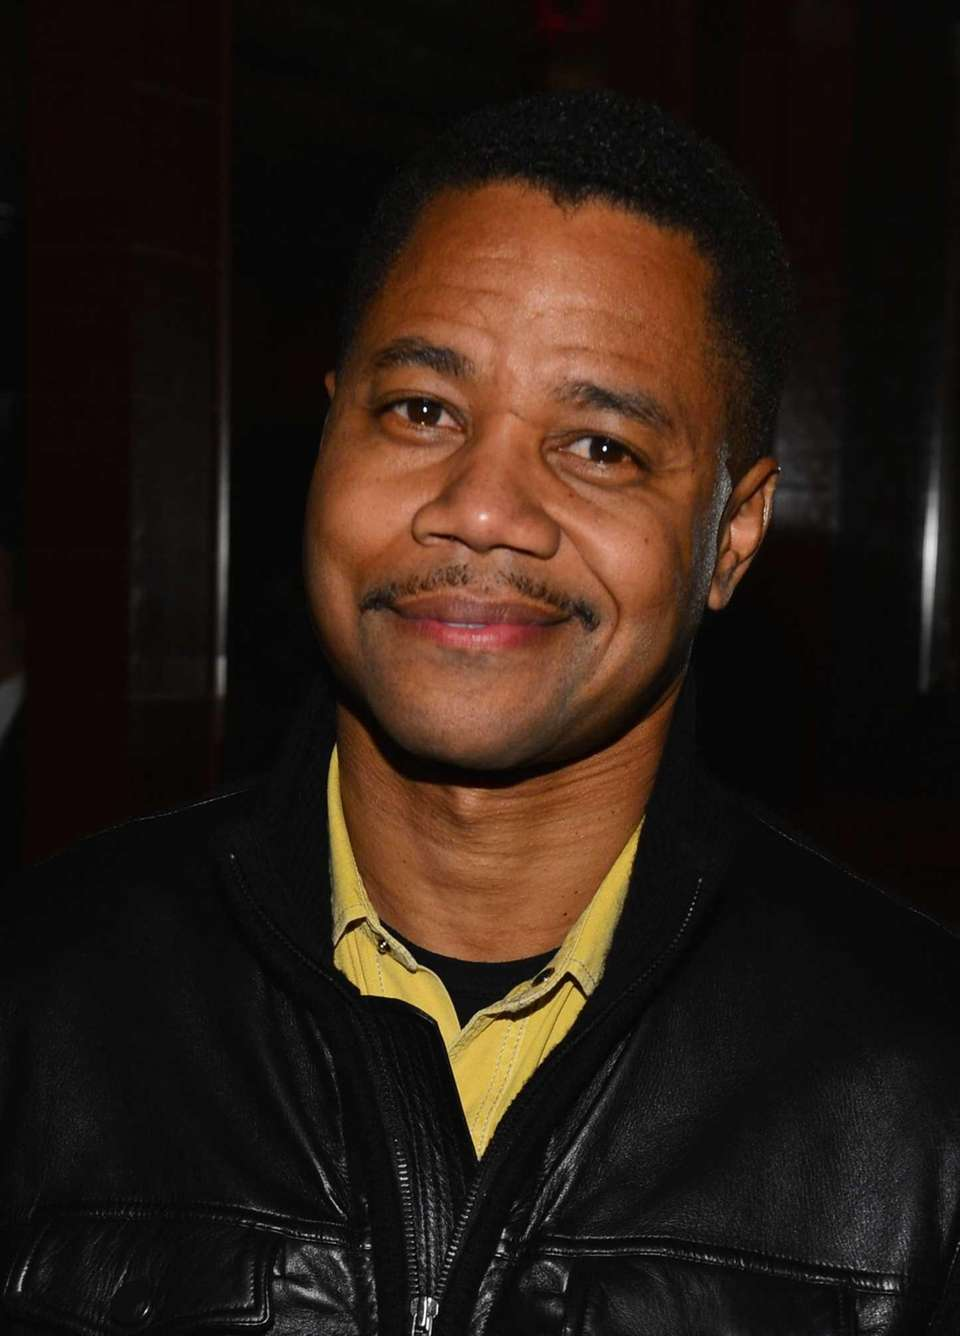 Cuba Gooding Jr., born Jan. 2, 1968.